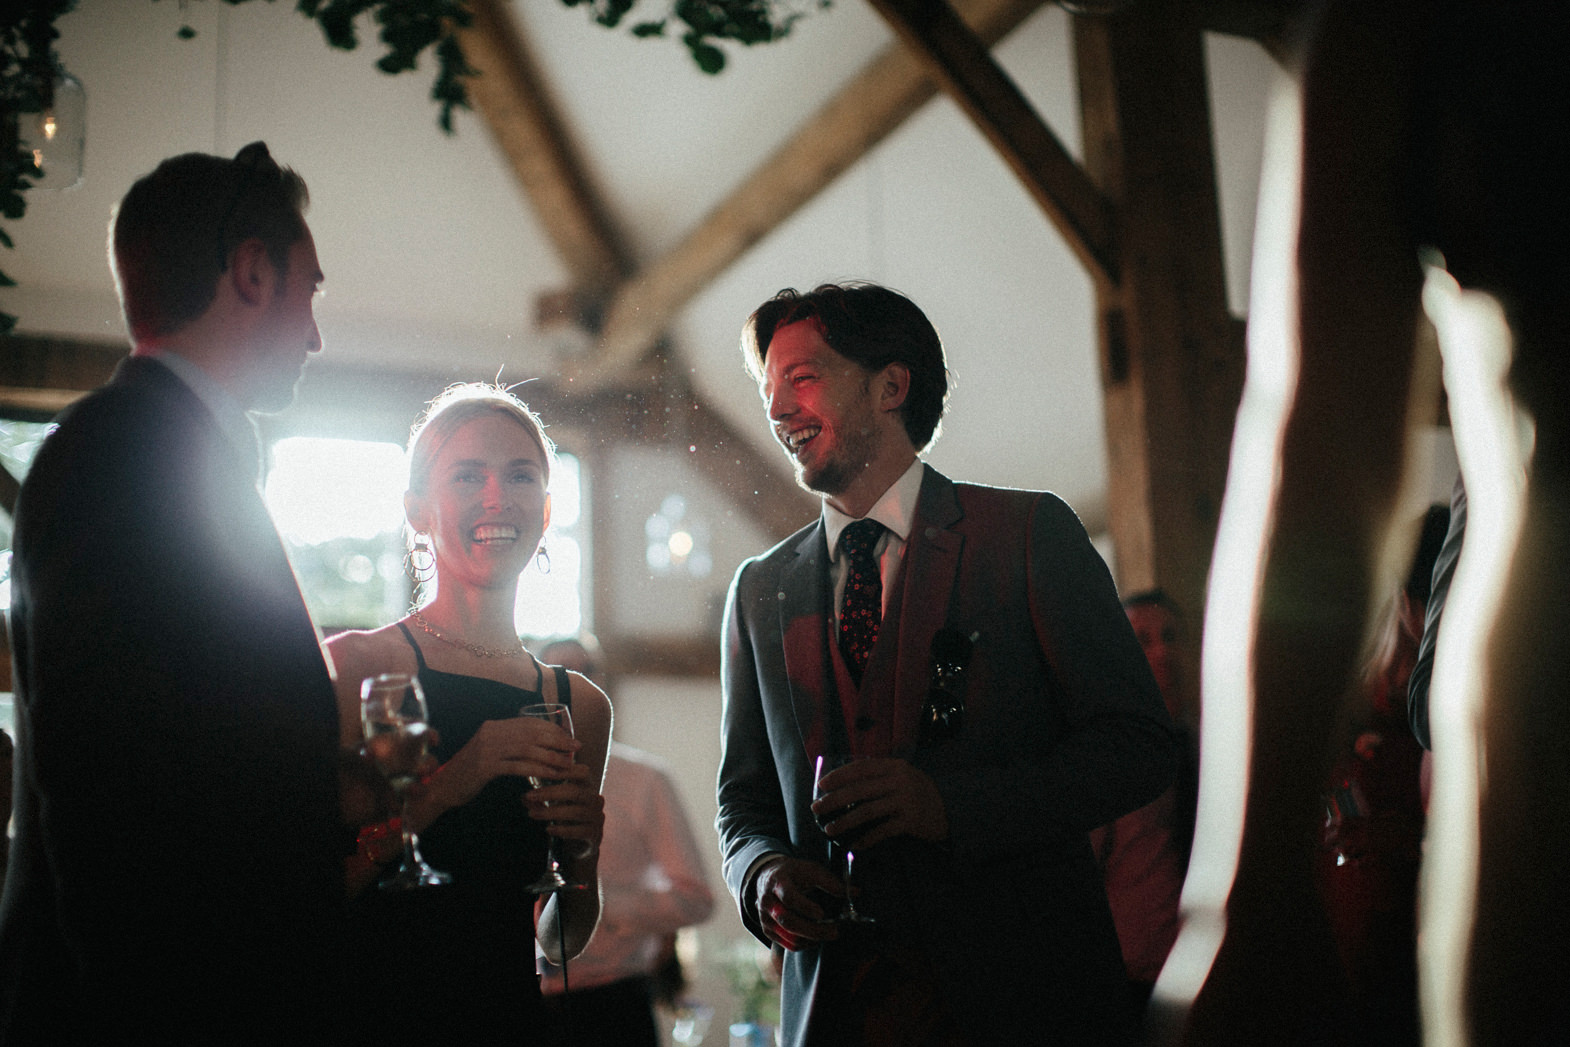 WEDDING PHOTOGRAPHy AT NANCARROW FARM (153).jpg